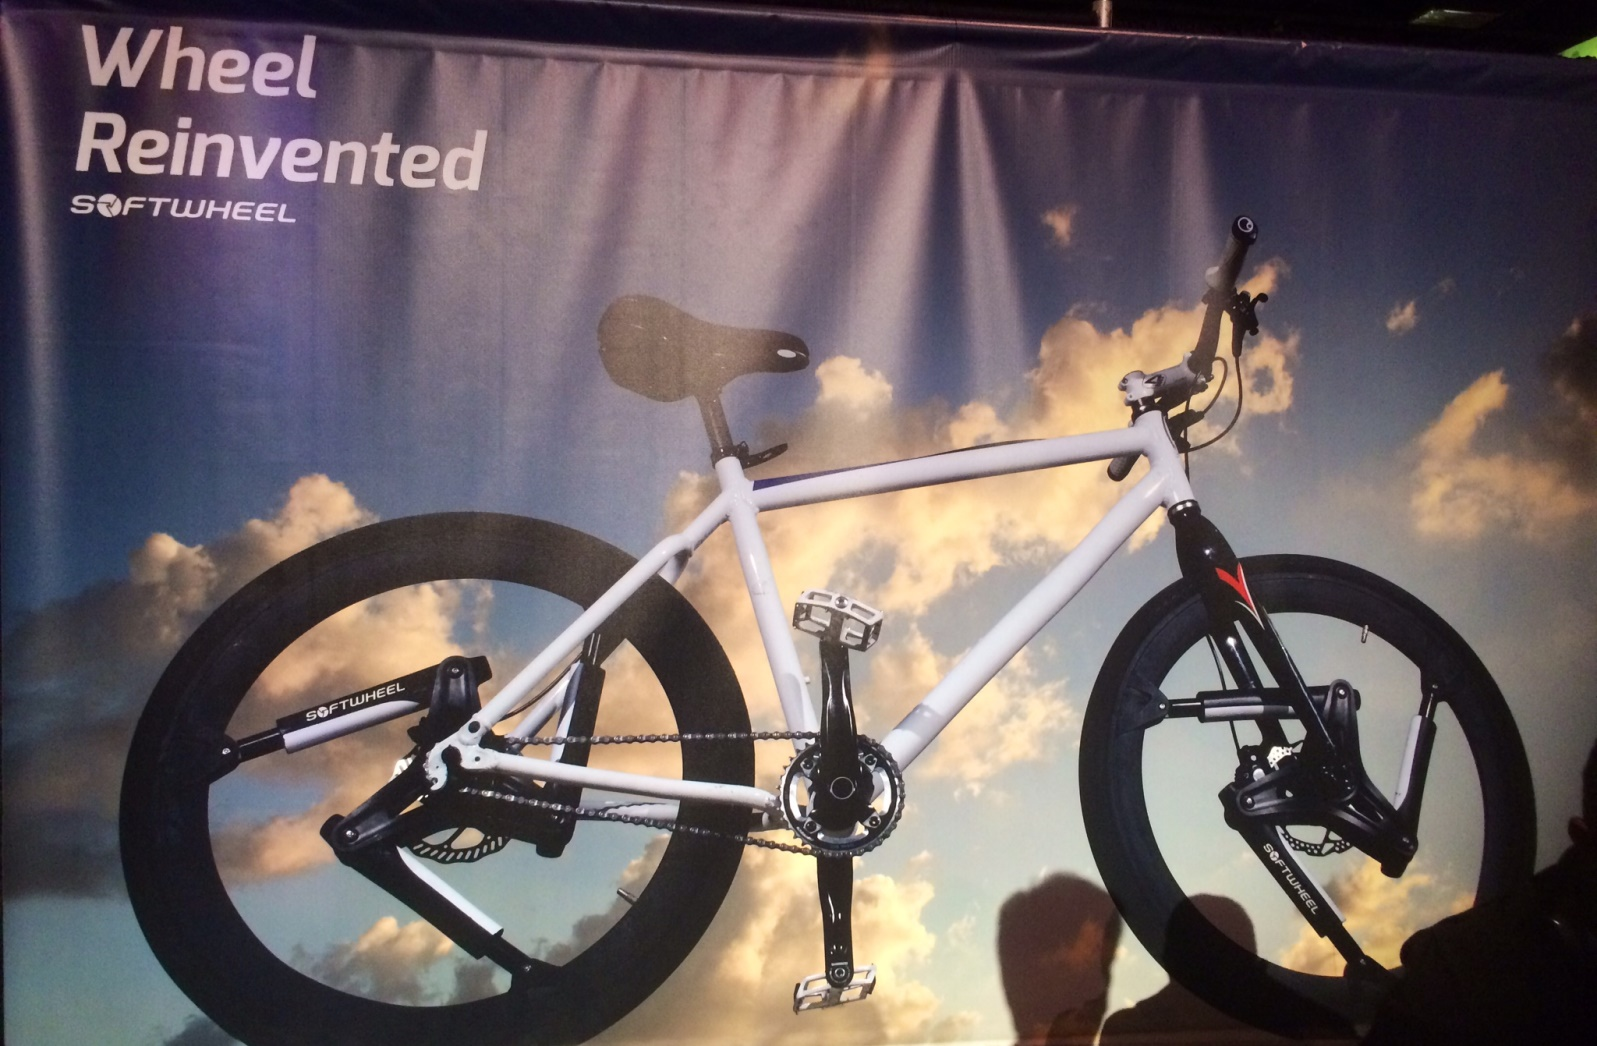 SoftWheel's display at the 2016 AIPAC Policy Conference in Washington, DC. Photo by Ben Hammer